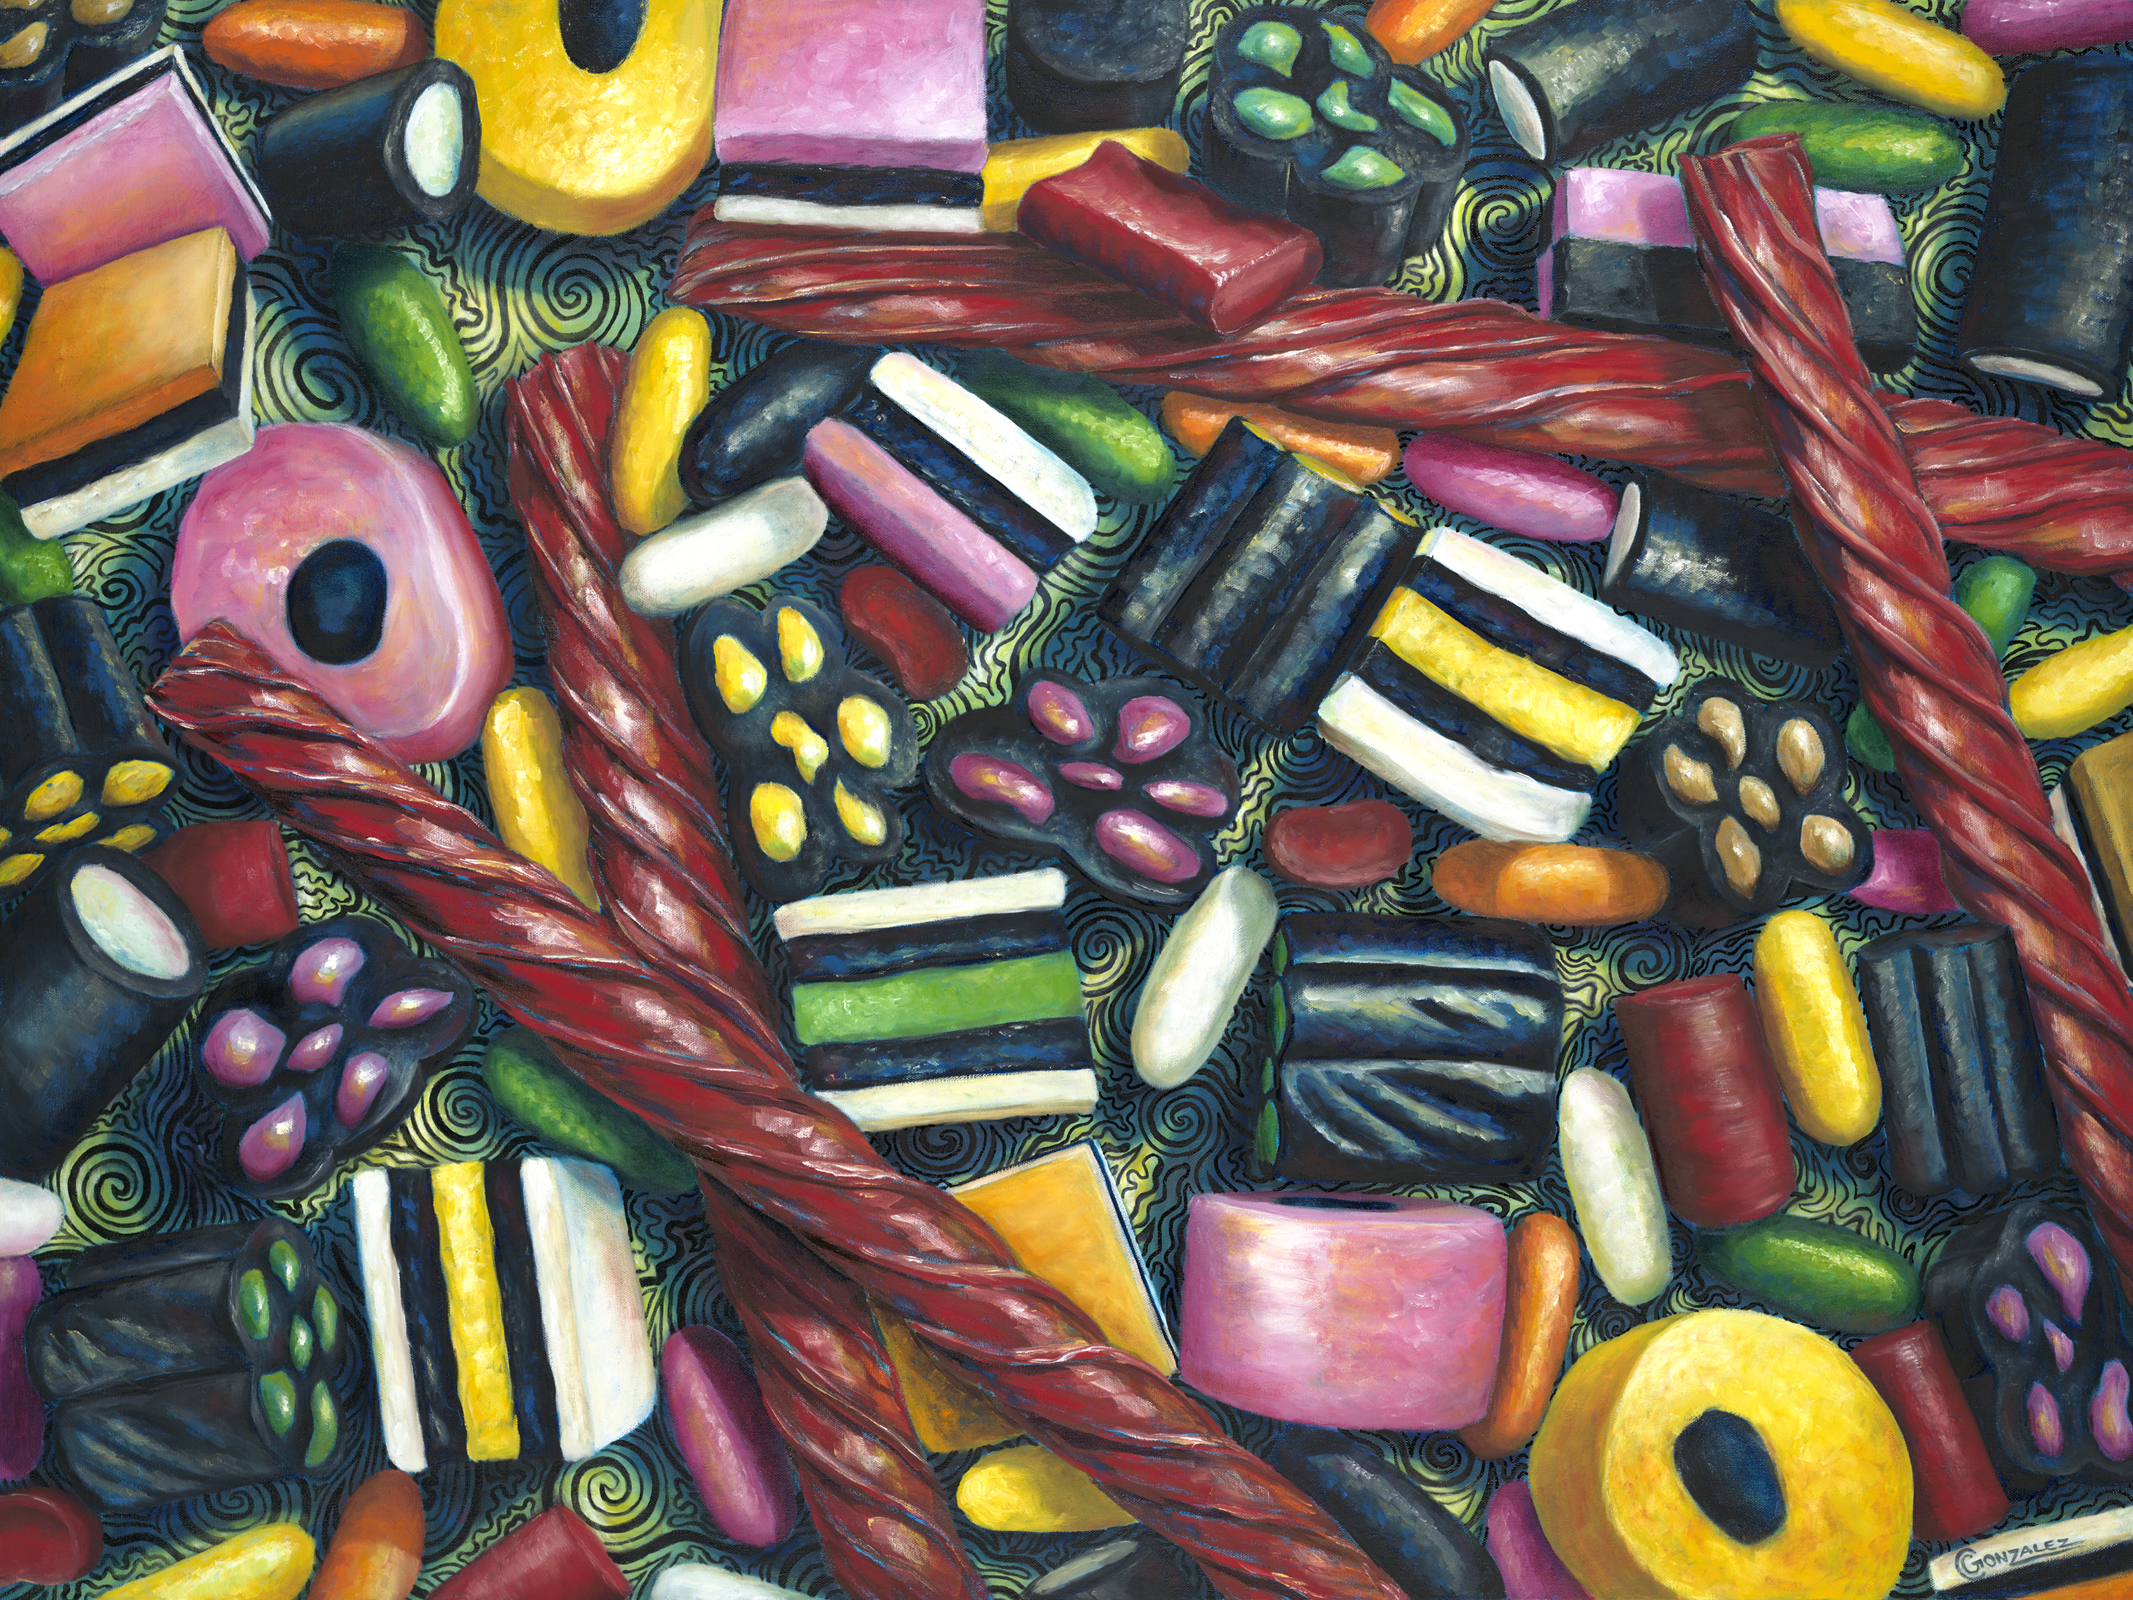 Carmen Gonzalez: 'licorice lovers', 2013 Oil Painting, Food. Painting done in oil on canvasPainted with oil on canvas.  My candies series paintings were inspired by childhood memories.  Every time I see certain candies, I am reminded of times as a child.  Candy has a way of luring us in with its bright colours, fun shapes, and addicting ...